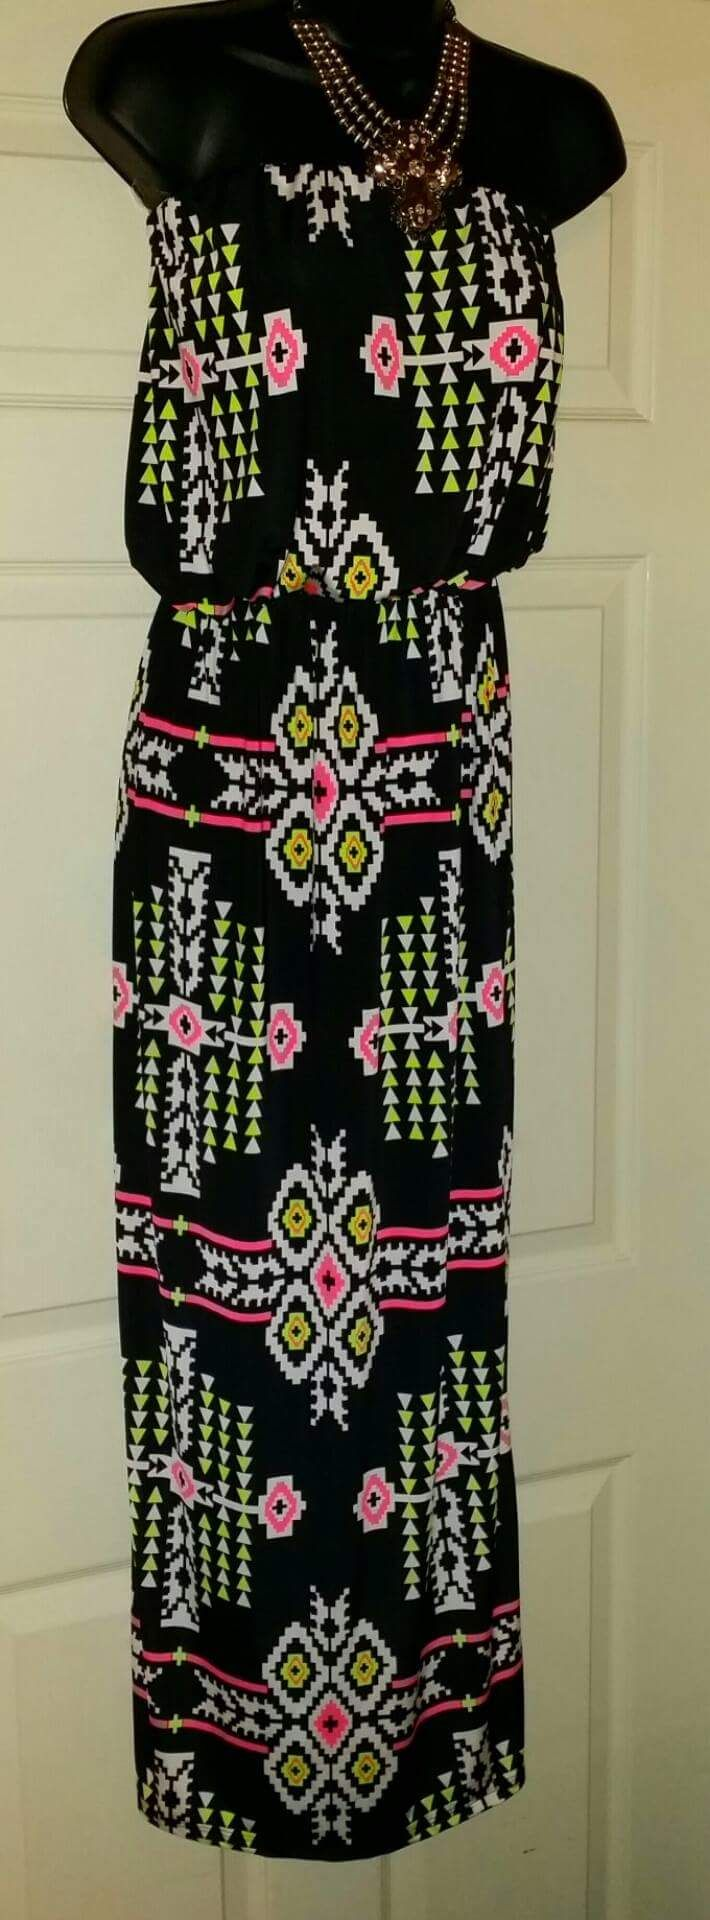 Classic Dash Neon Tribal Maxi Dress $35 www.gypzranch.com